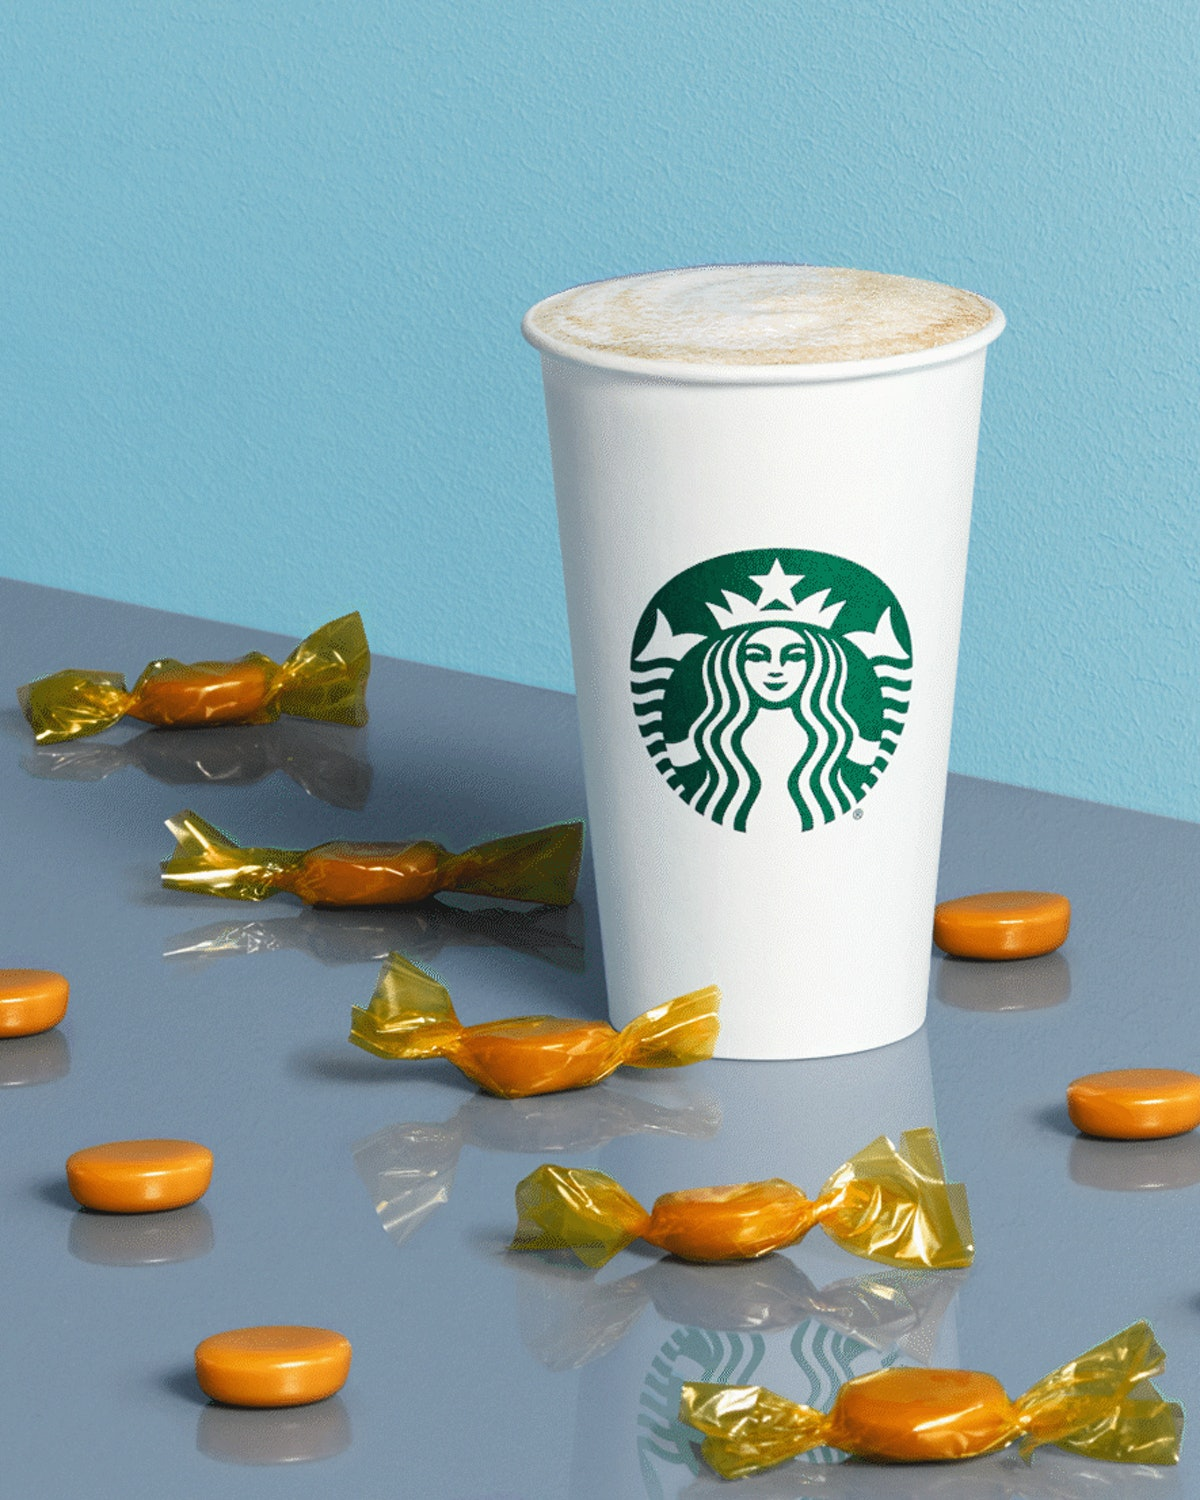 Starbucks' Smoked Butterscotch Latte Is Back For 2020, along with two new dairy-free lattes and a br...